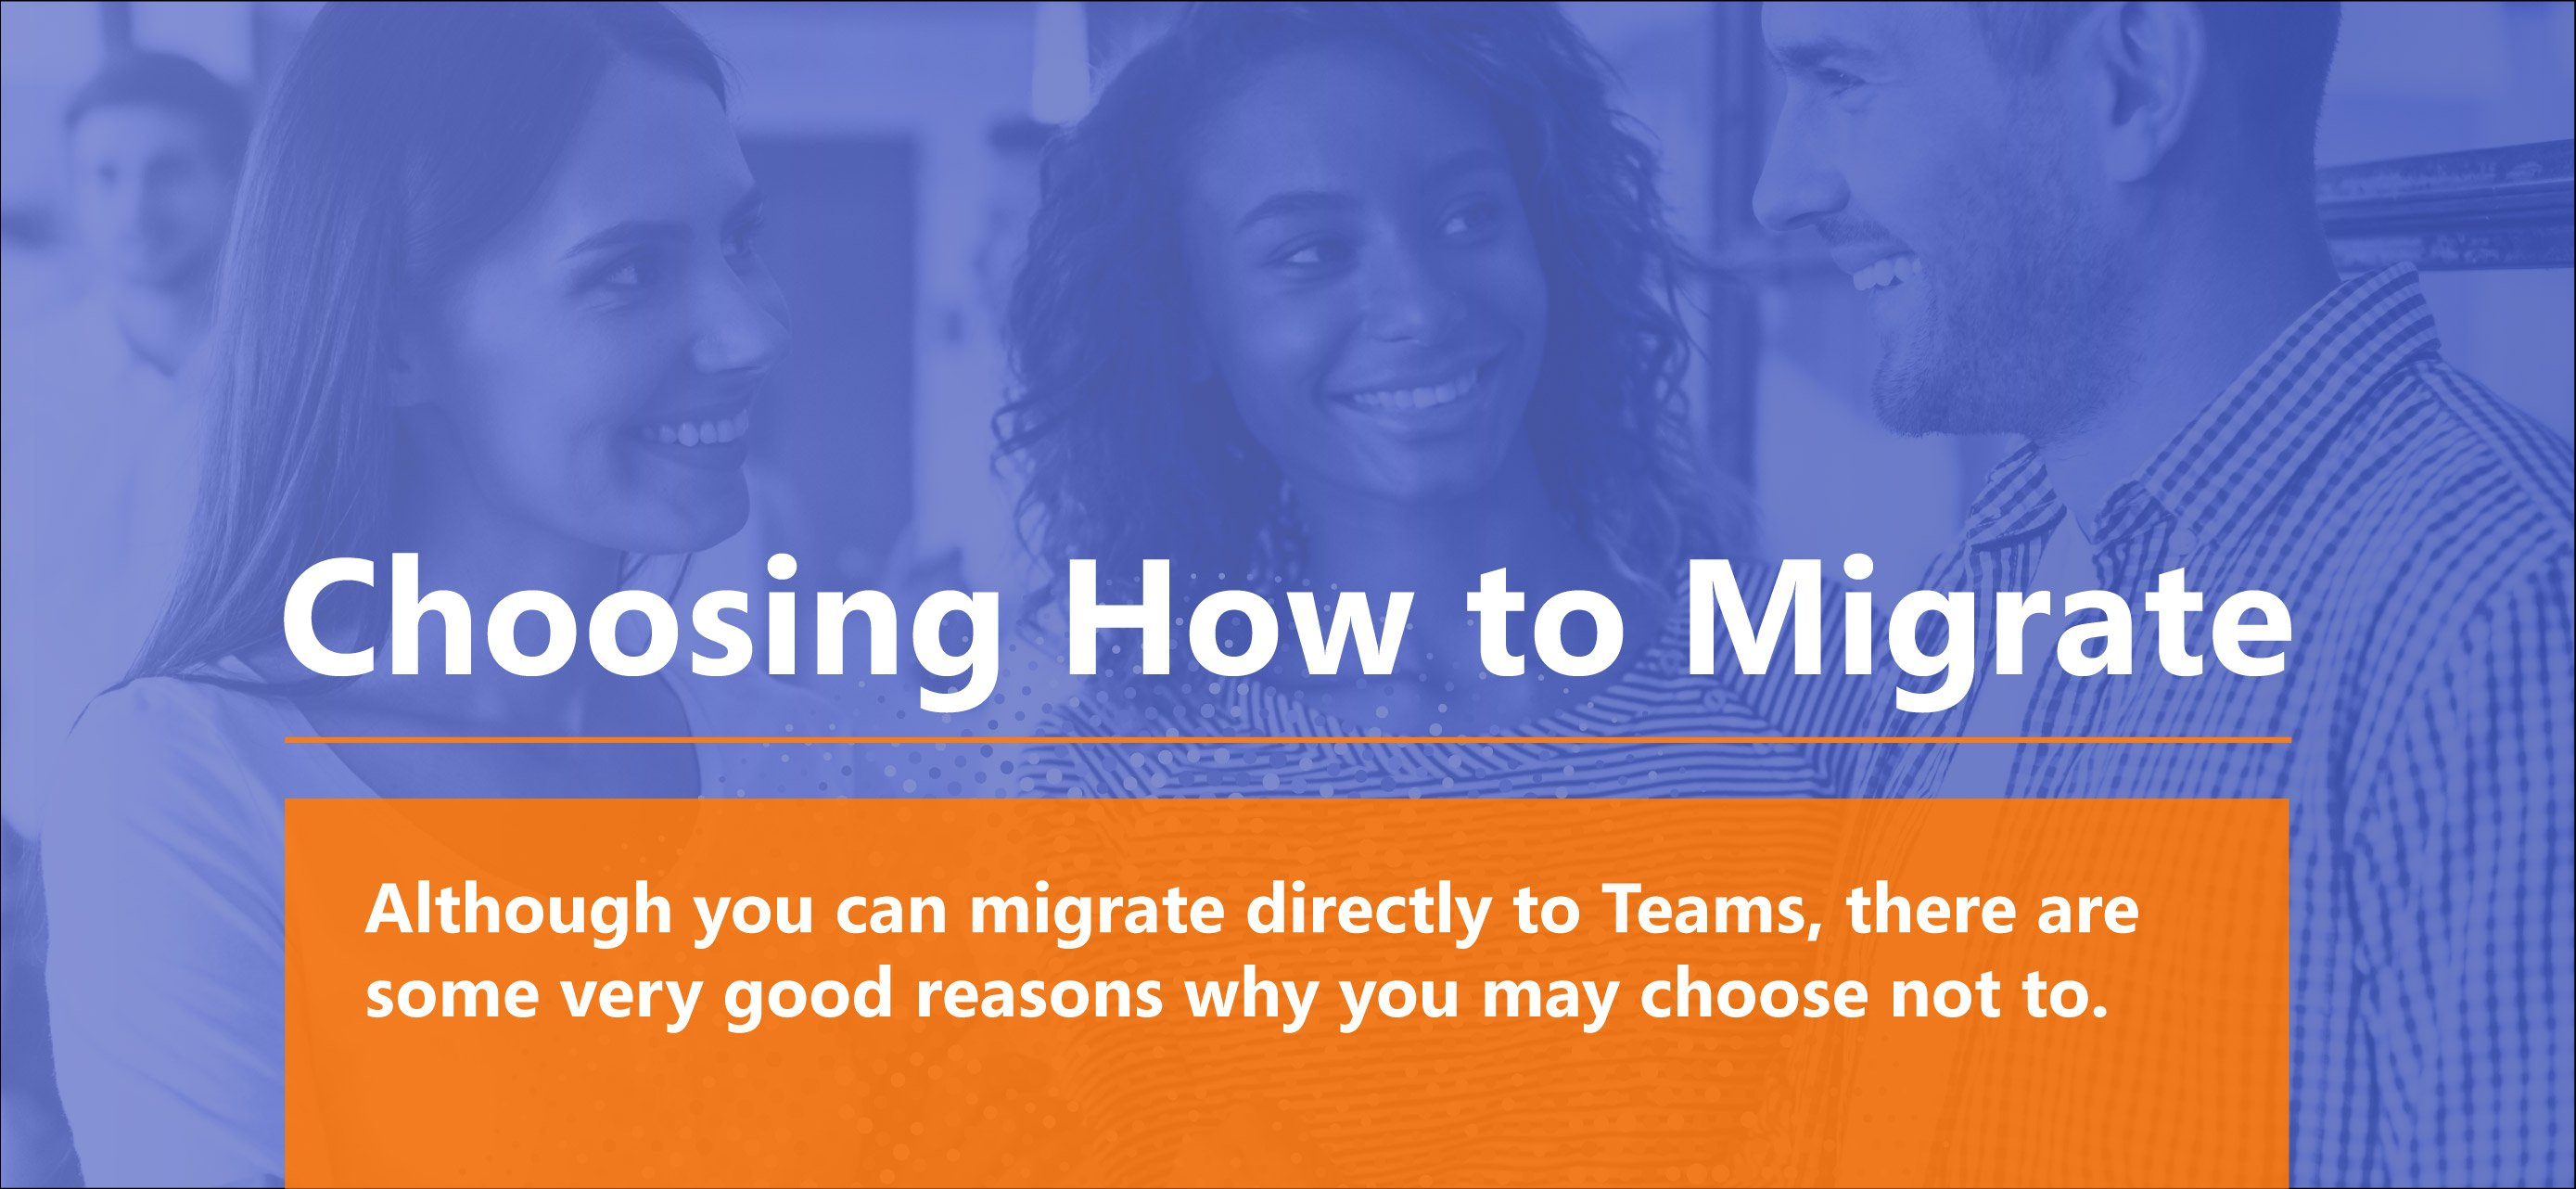 Choosing How to Migrate